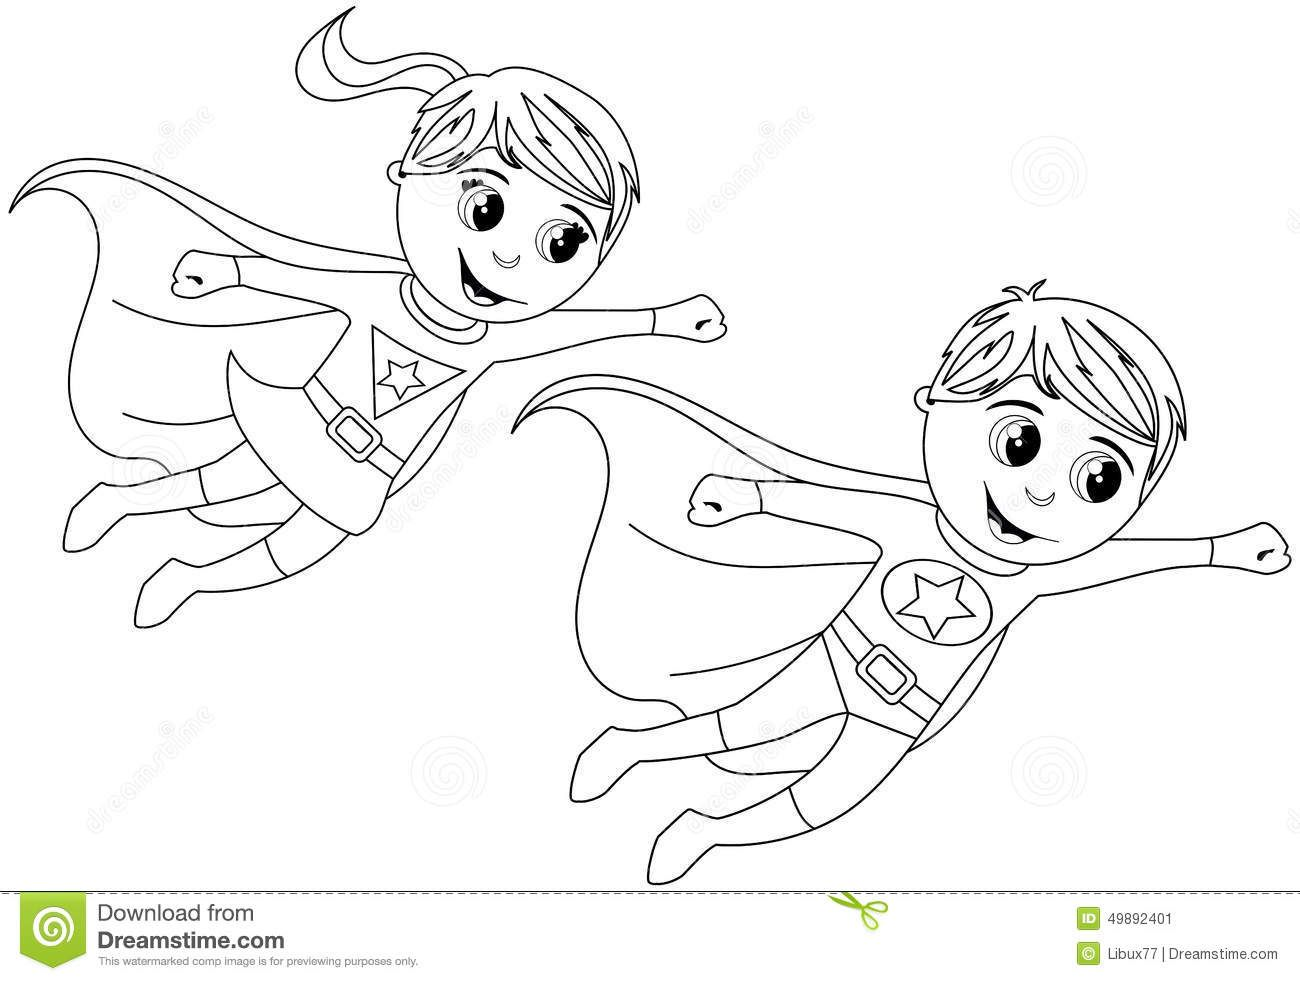 child superhero coloring pages - photo#3